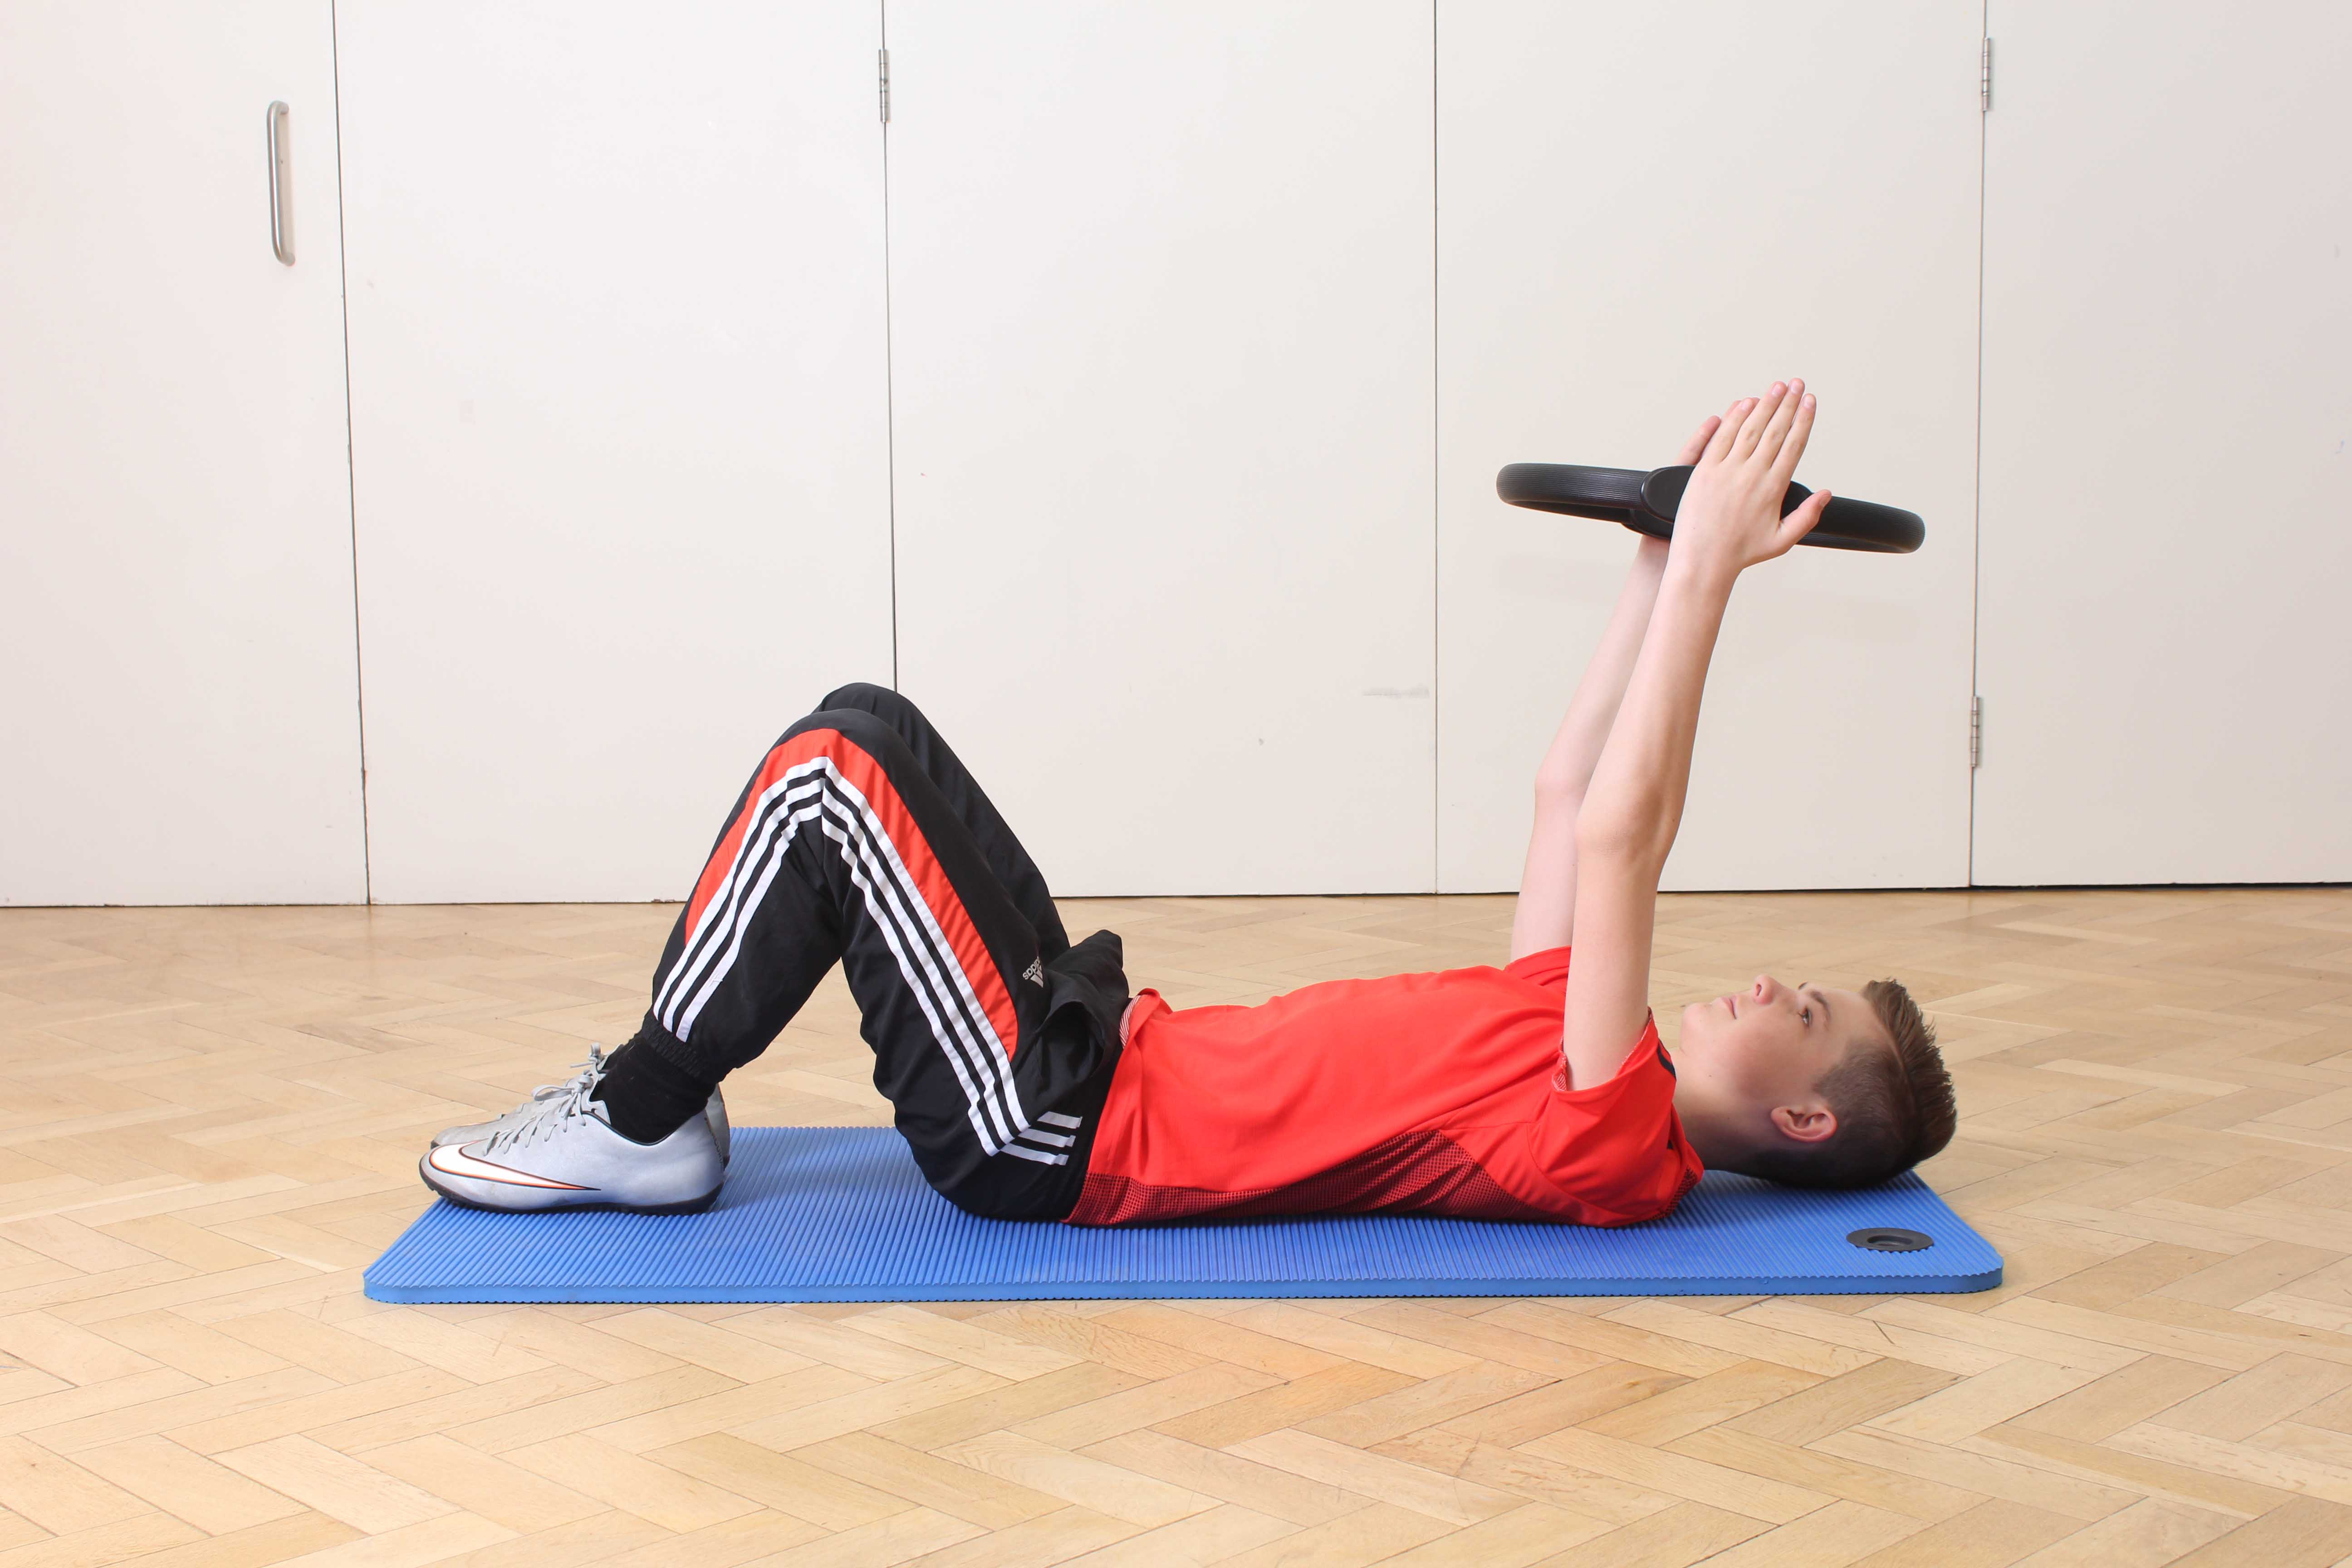 Sretches and realignment exercises for the back